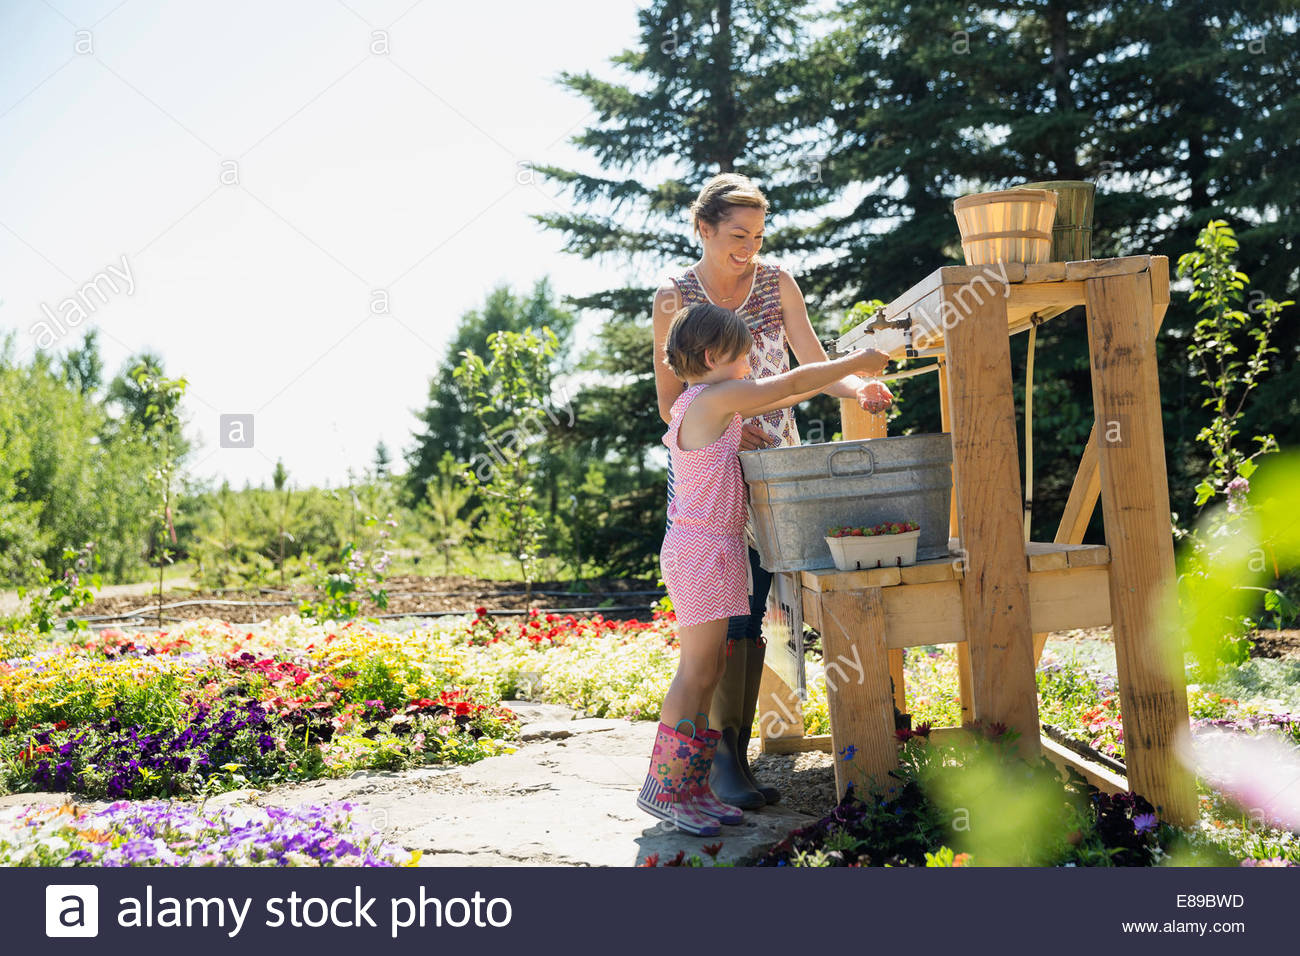 Mother and daughter rinsing fresh picked berries - Stock Image